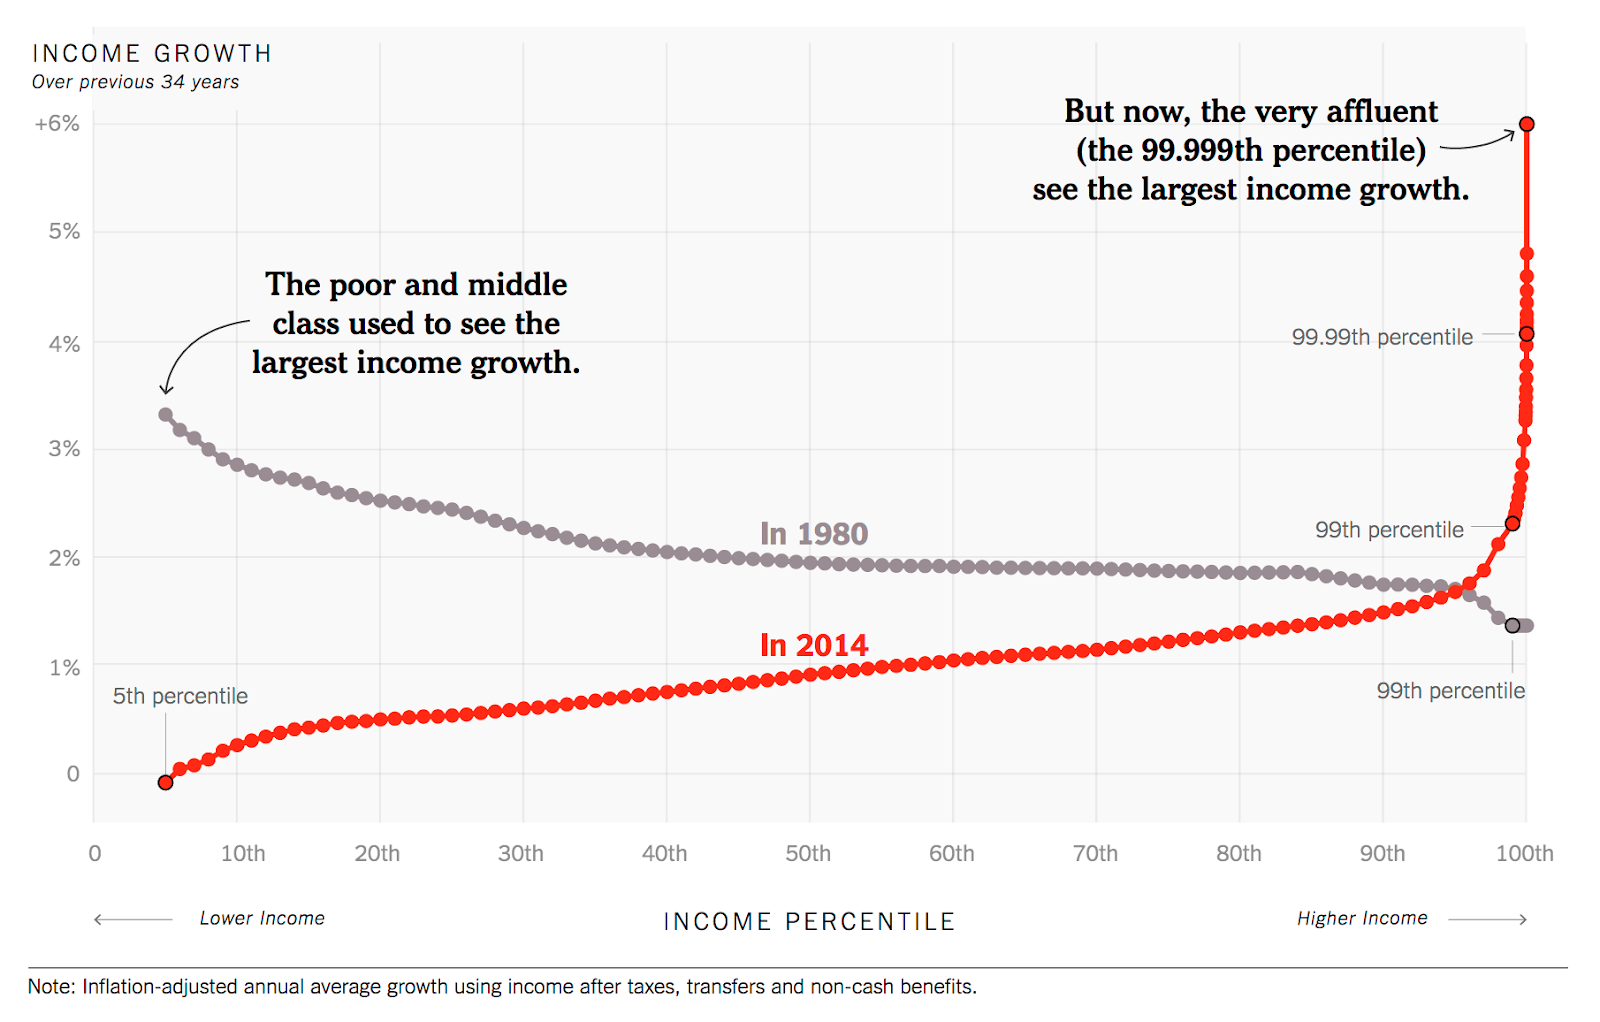 Wealth inequality is low before 1980: low-income grows faster than high-income.